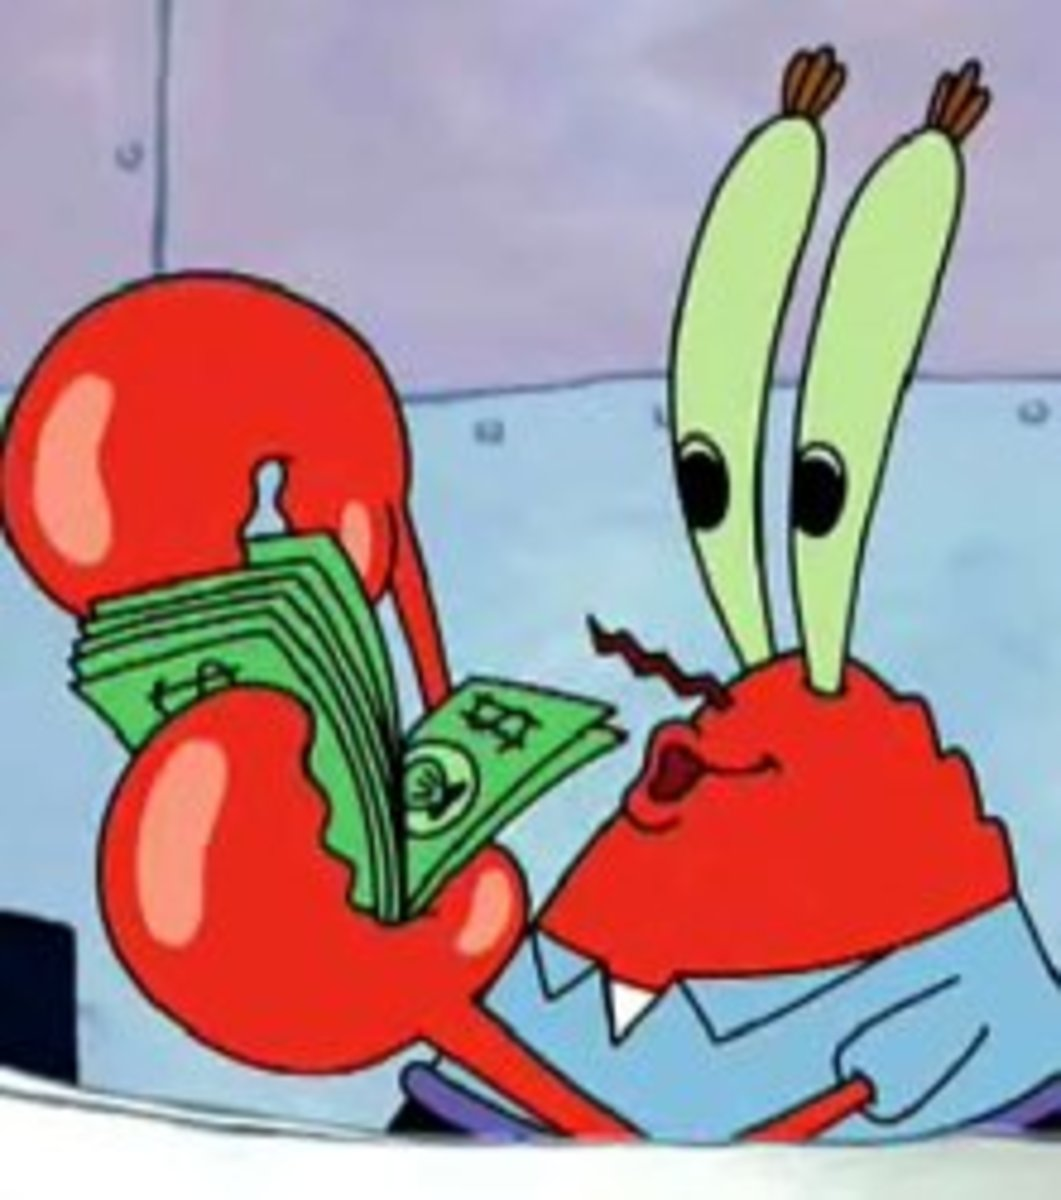 Mr. krabs loves his money.